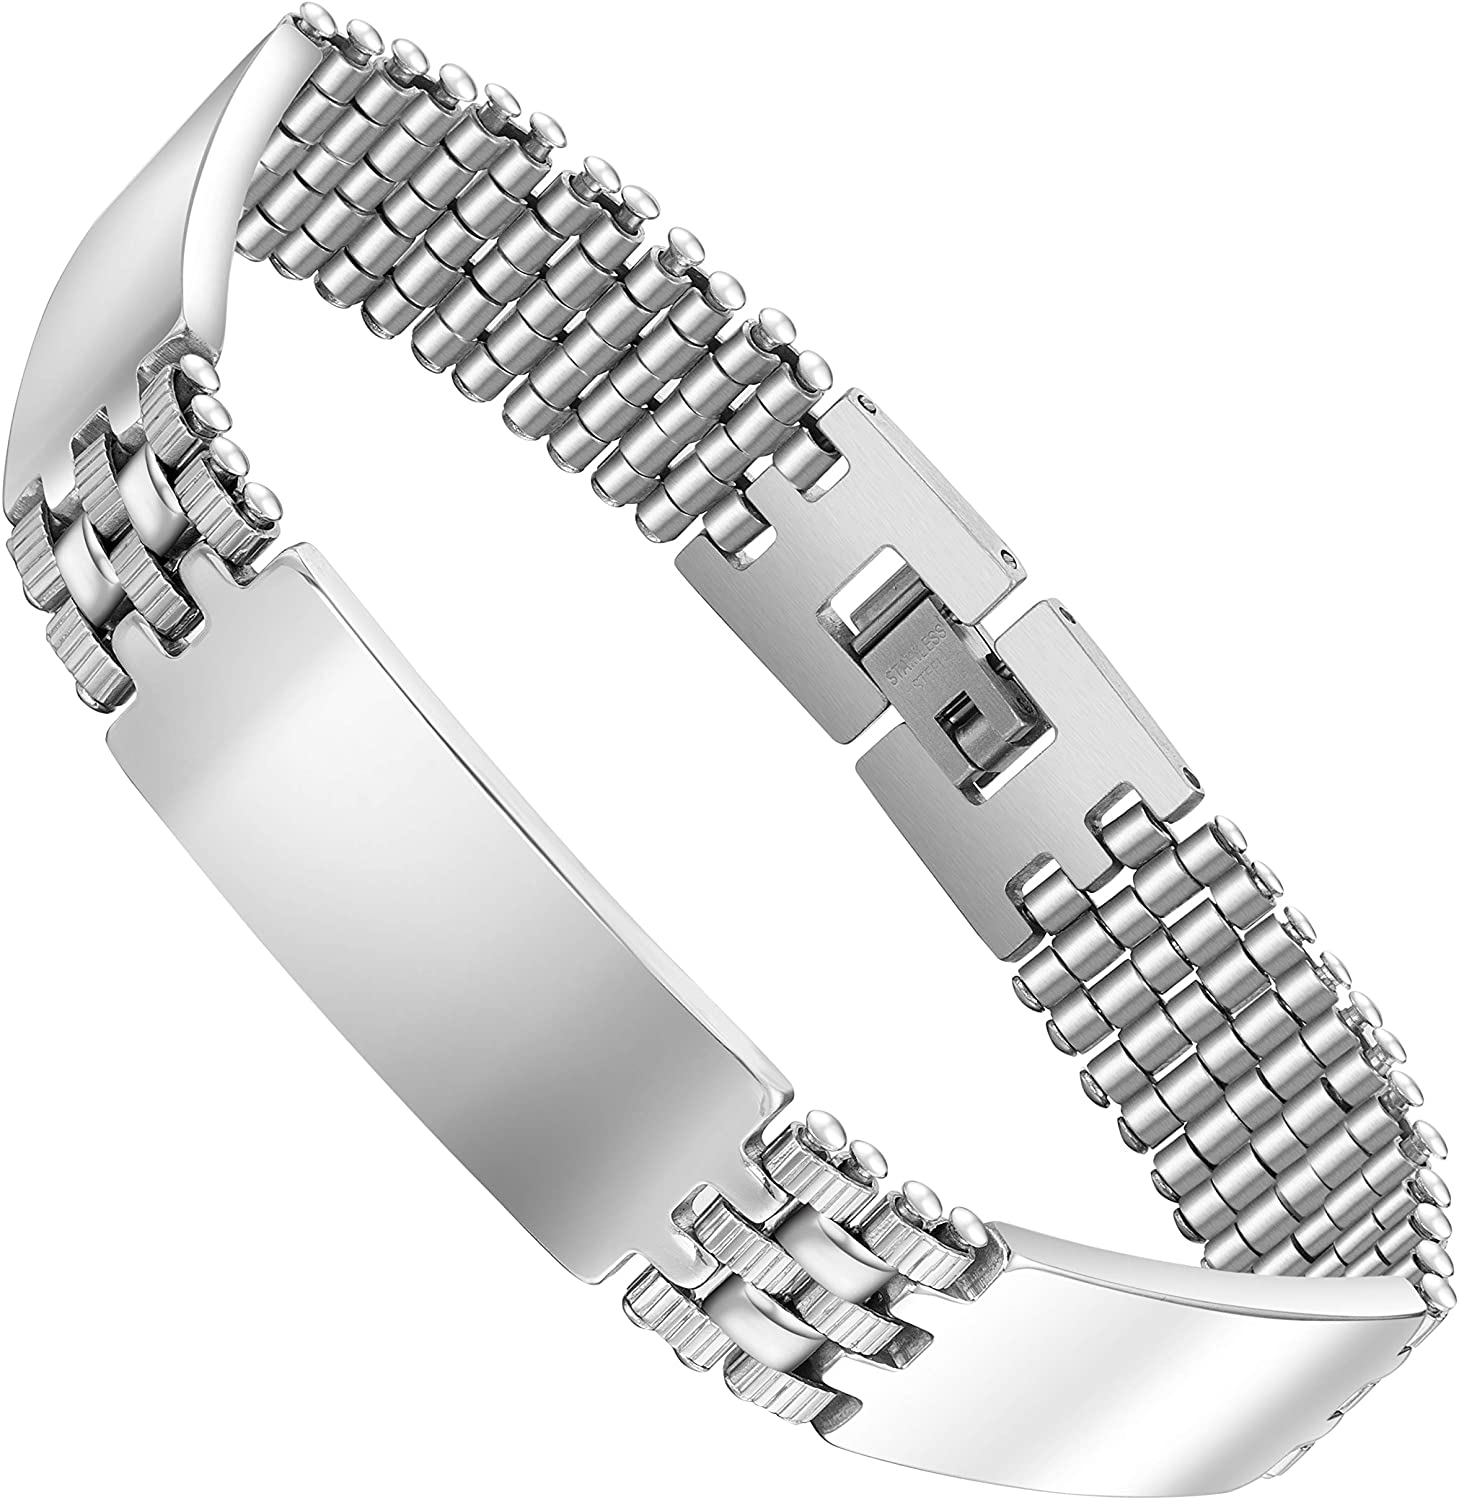 Men's Stainless Steel Link Bracelet – Slim Interlocking Steel Panel Design For Engraving in a Polished Silver Finish (Silver, 8.3 inch (21cm))